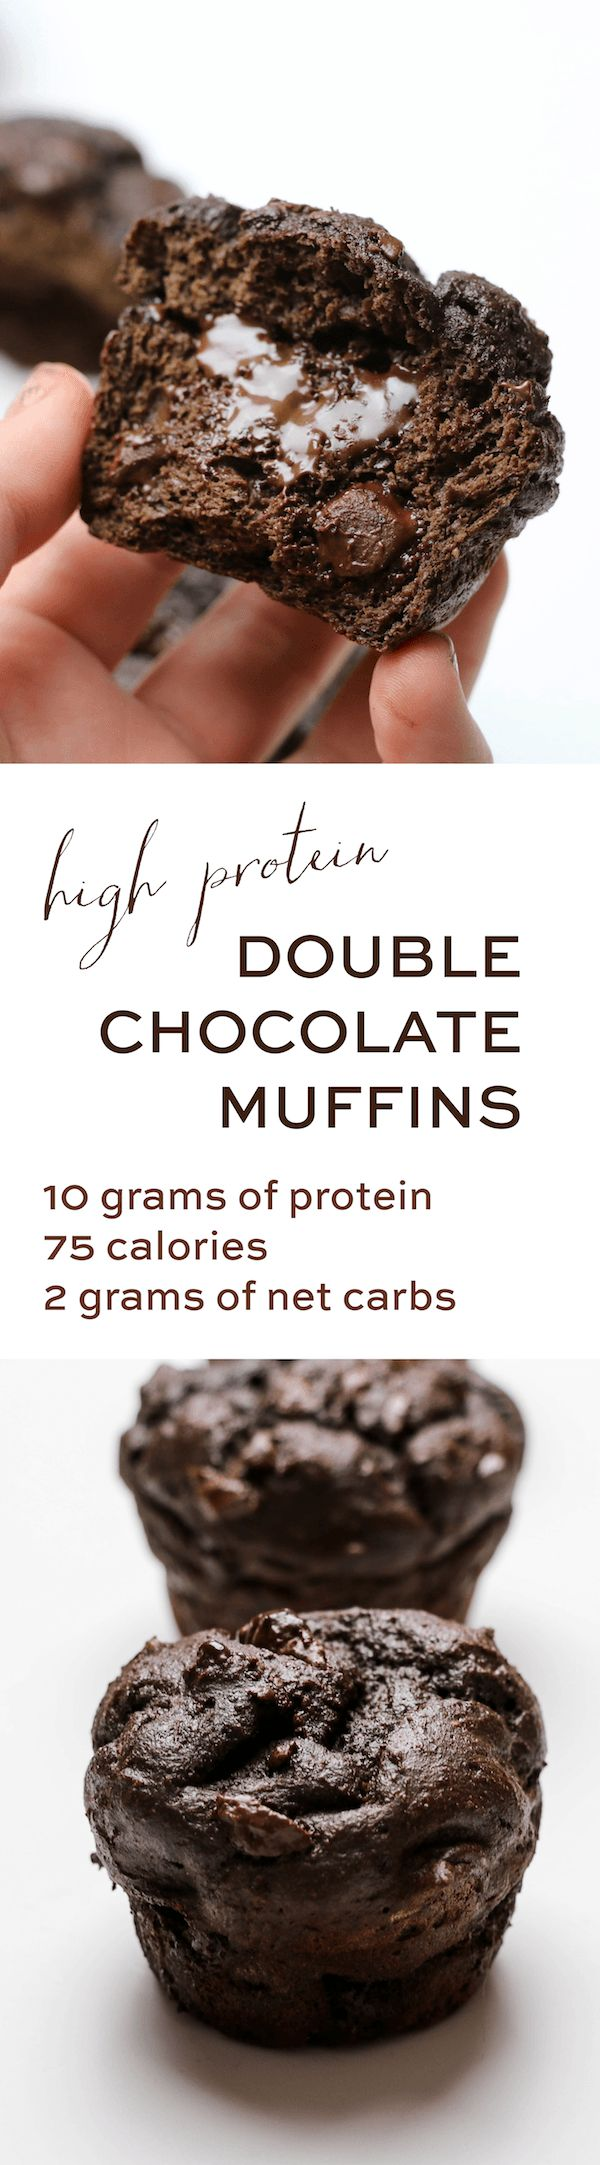 TIncredibly rich and loaded with dark chocolate chips, what really blew me away is how healthy they are. Each muffin has only 75 calories and 2g net carbs, but they pack 10g protein!!! Make these muffins and find out why they're our new favorite breakfast.